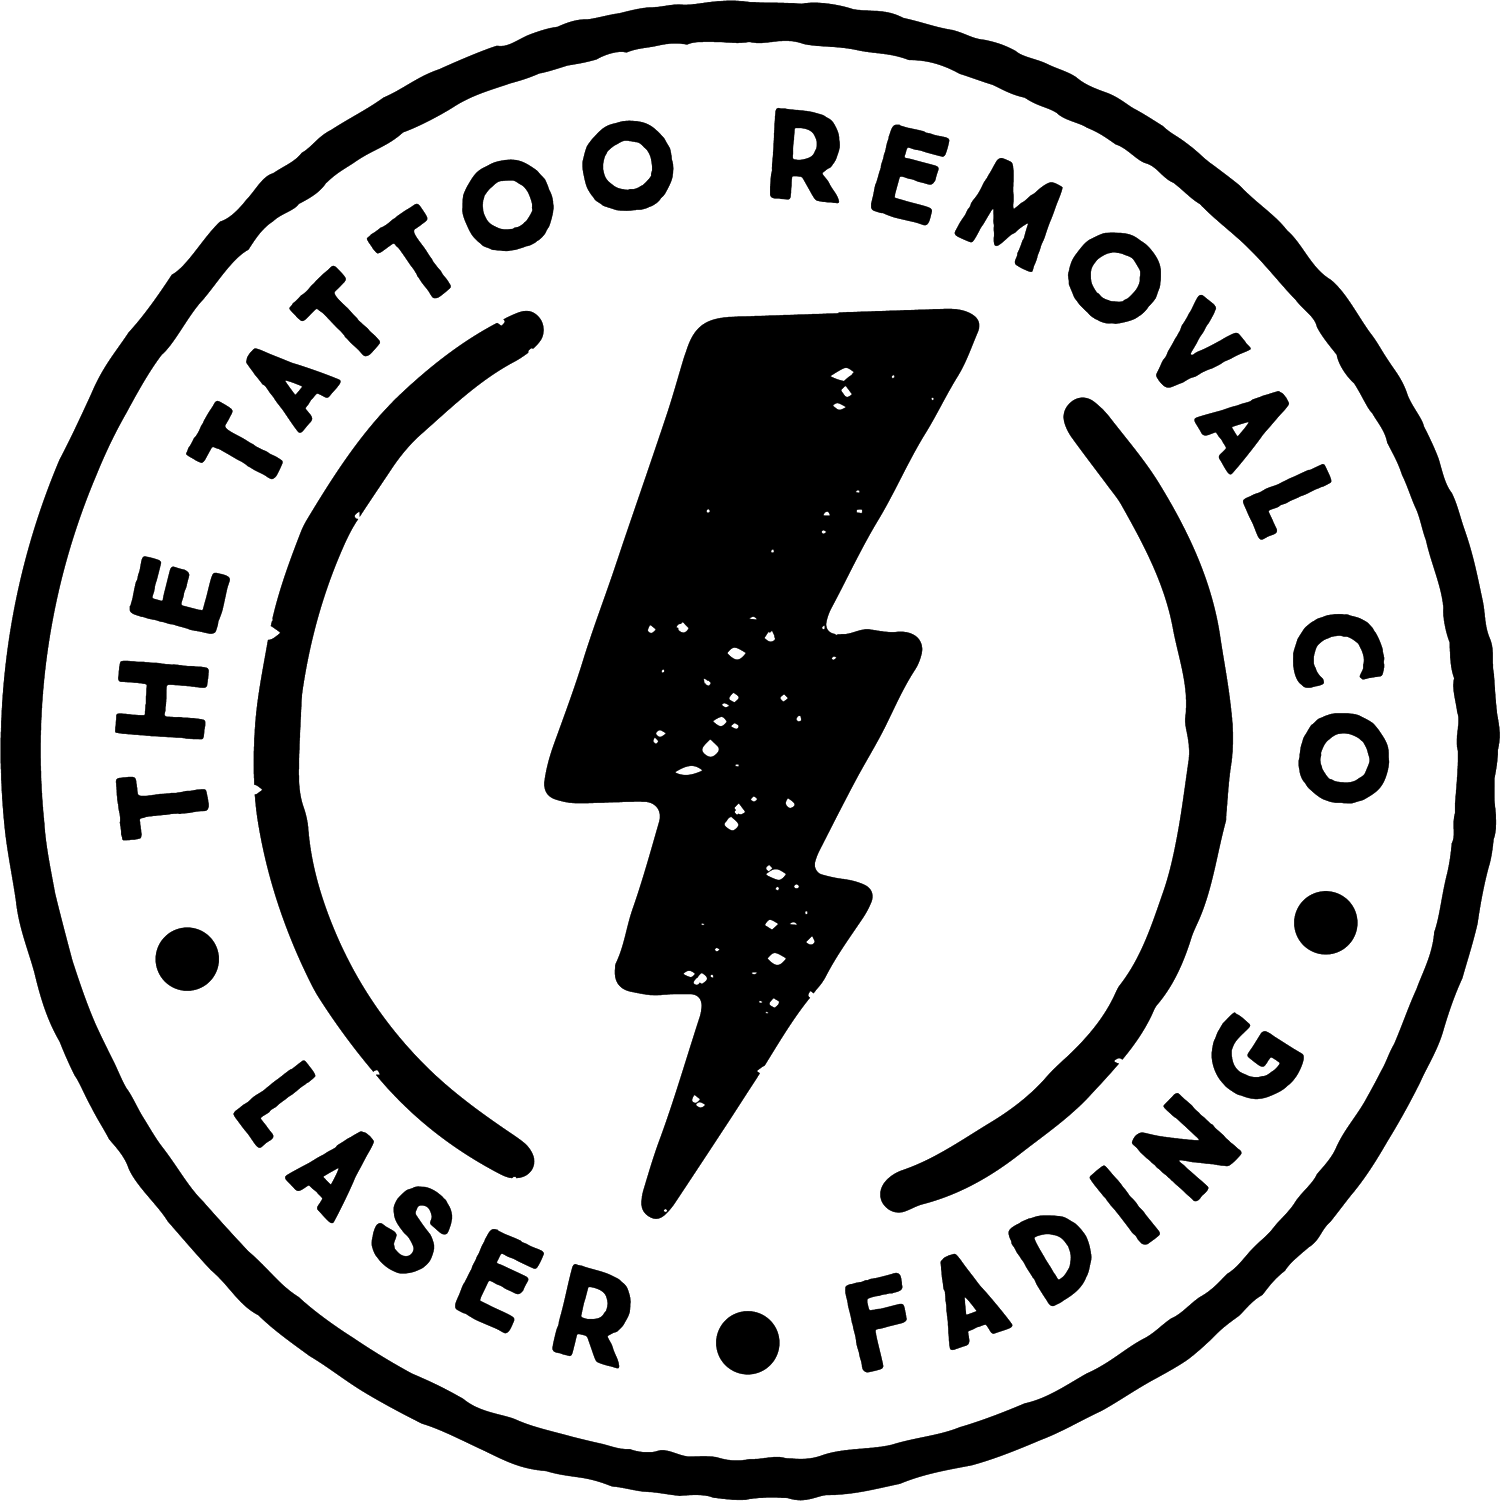 The Tattoo Removal Co.